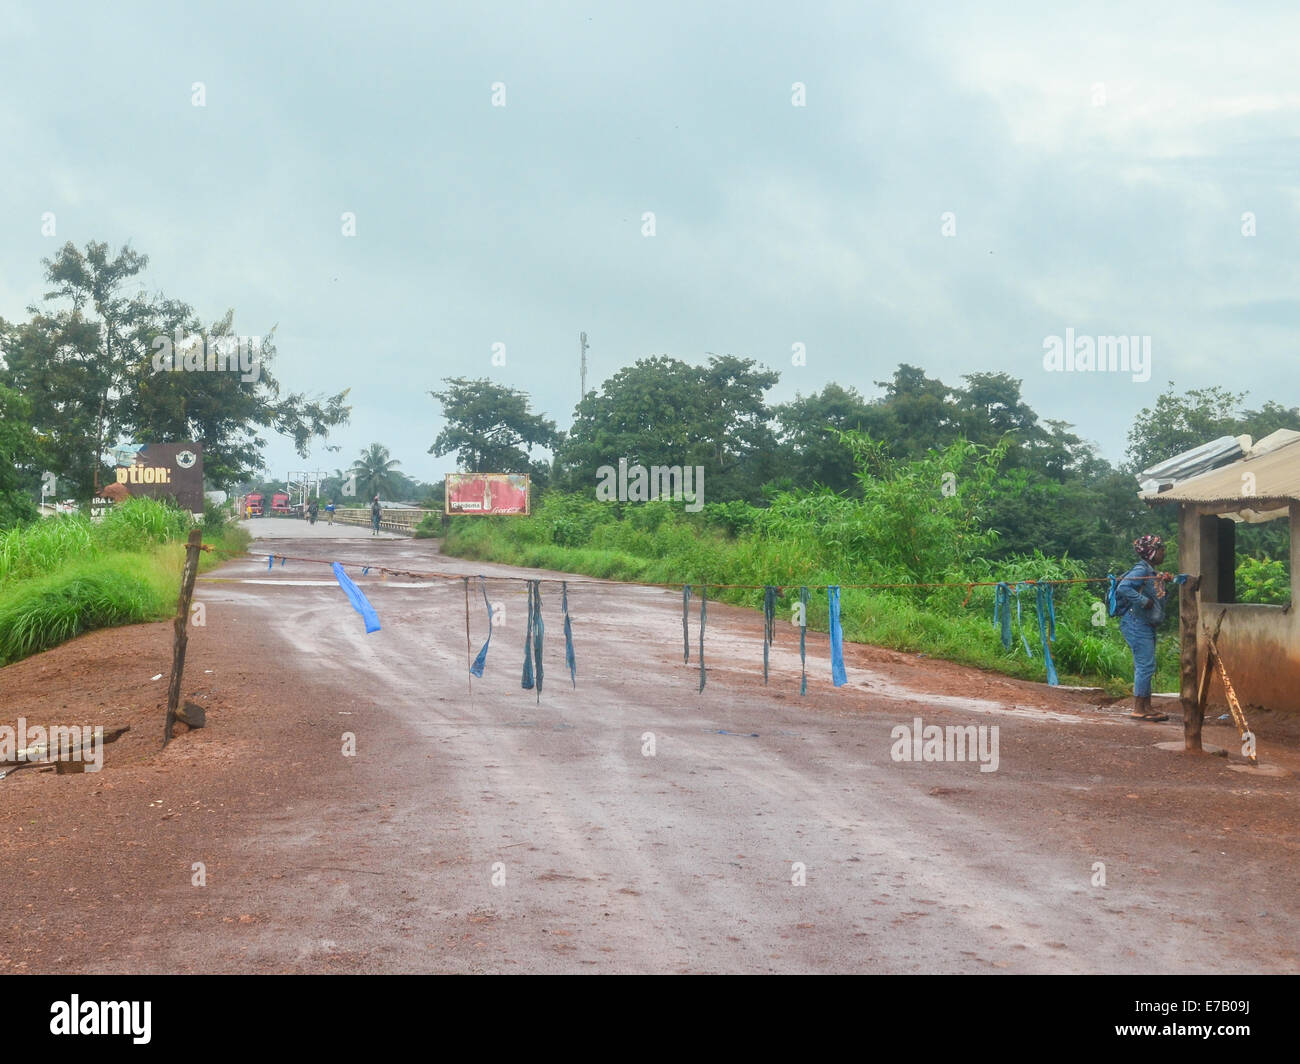 Road of the border between Sierra Leone and Liberia in Jendemah - Stock Image